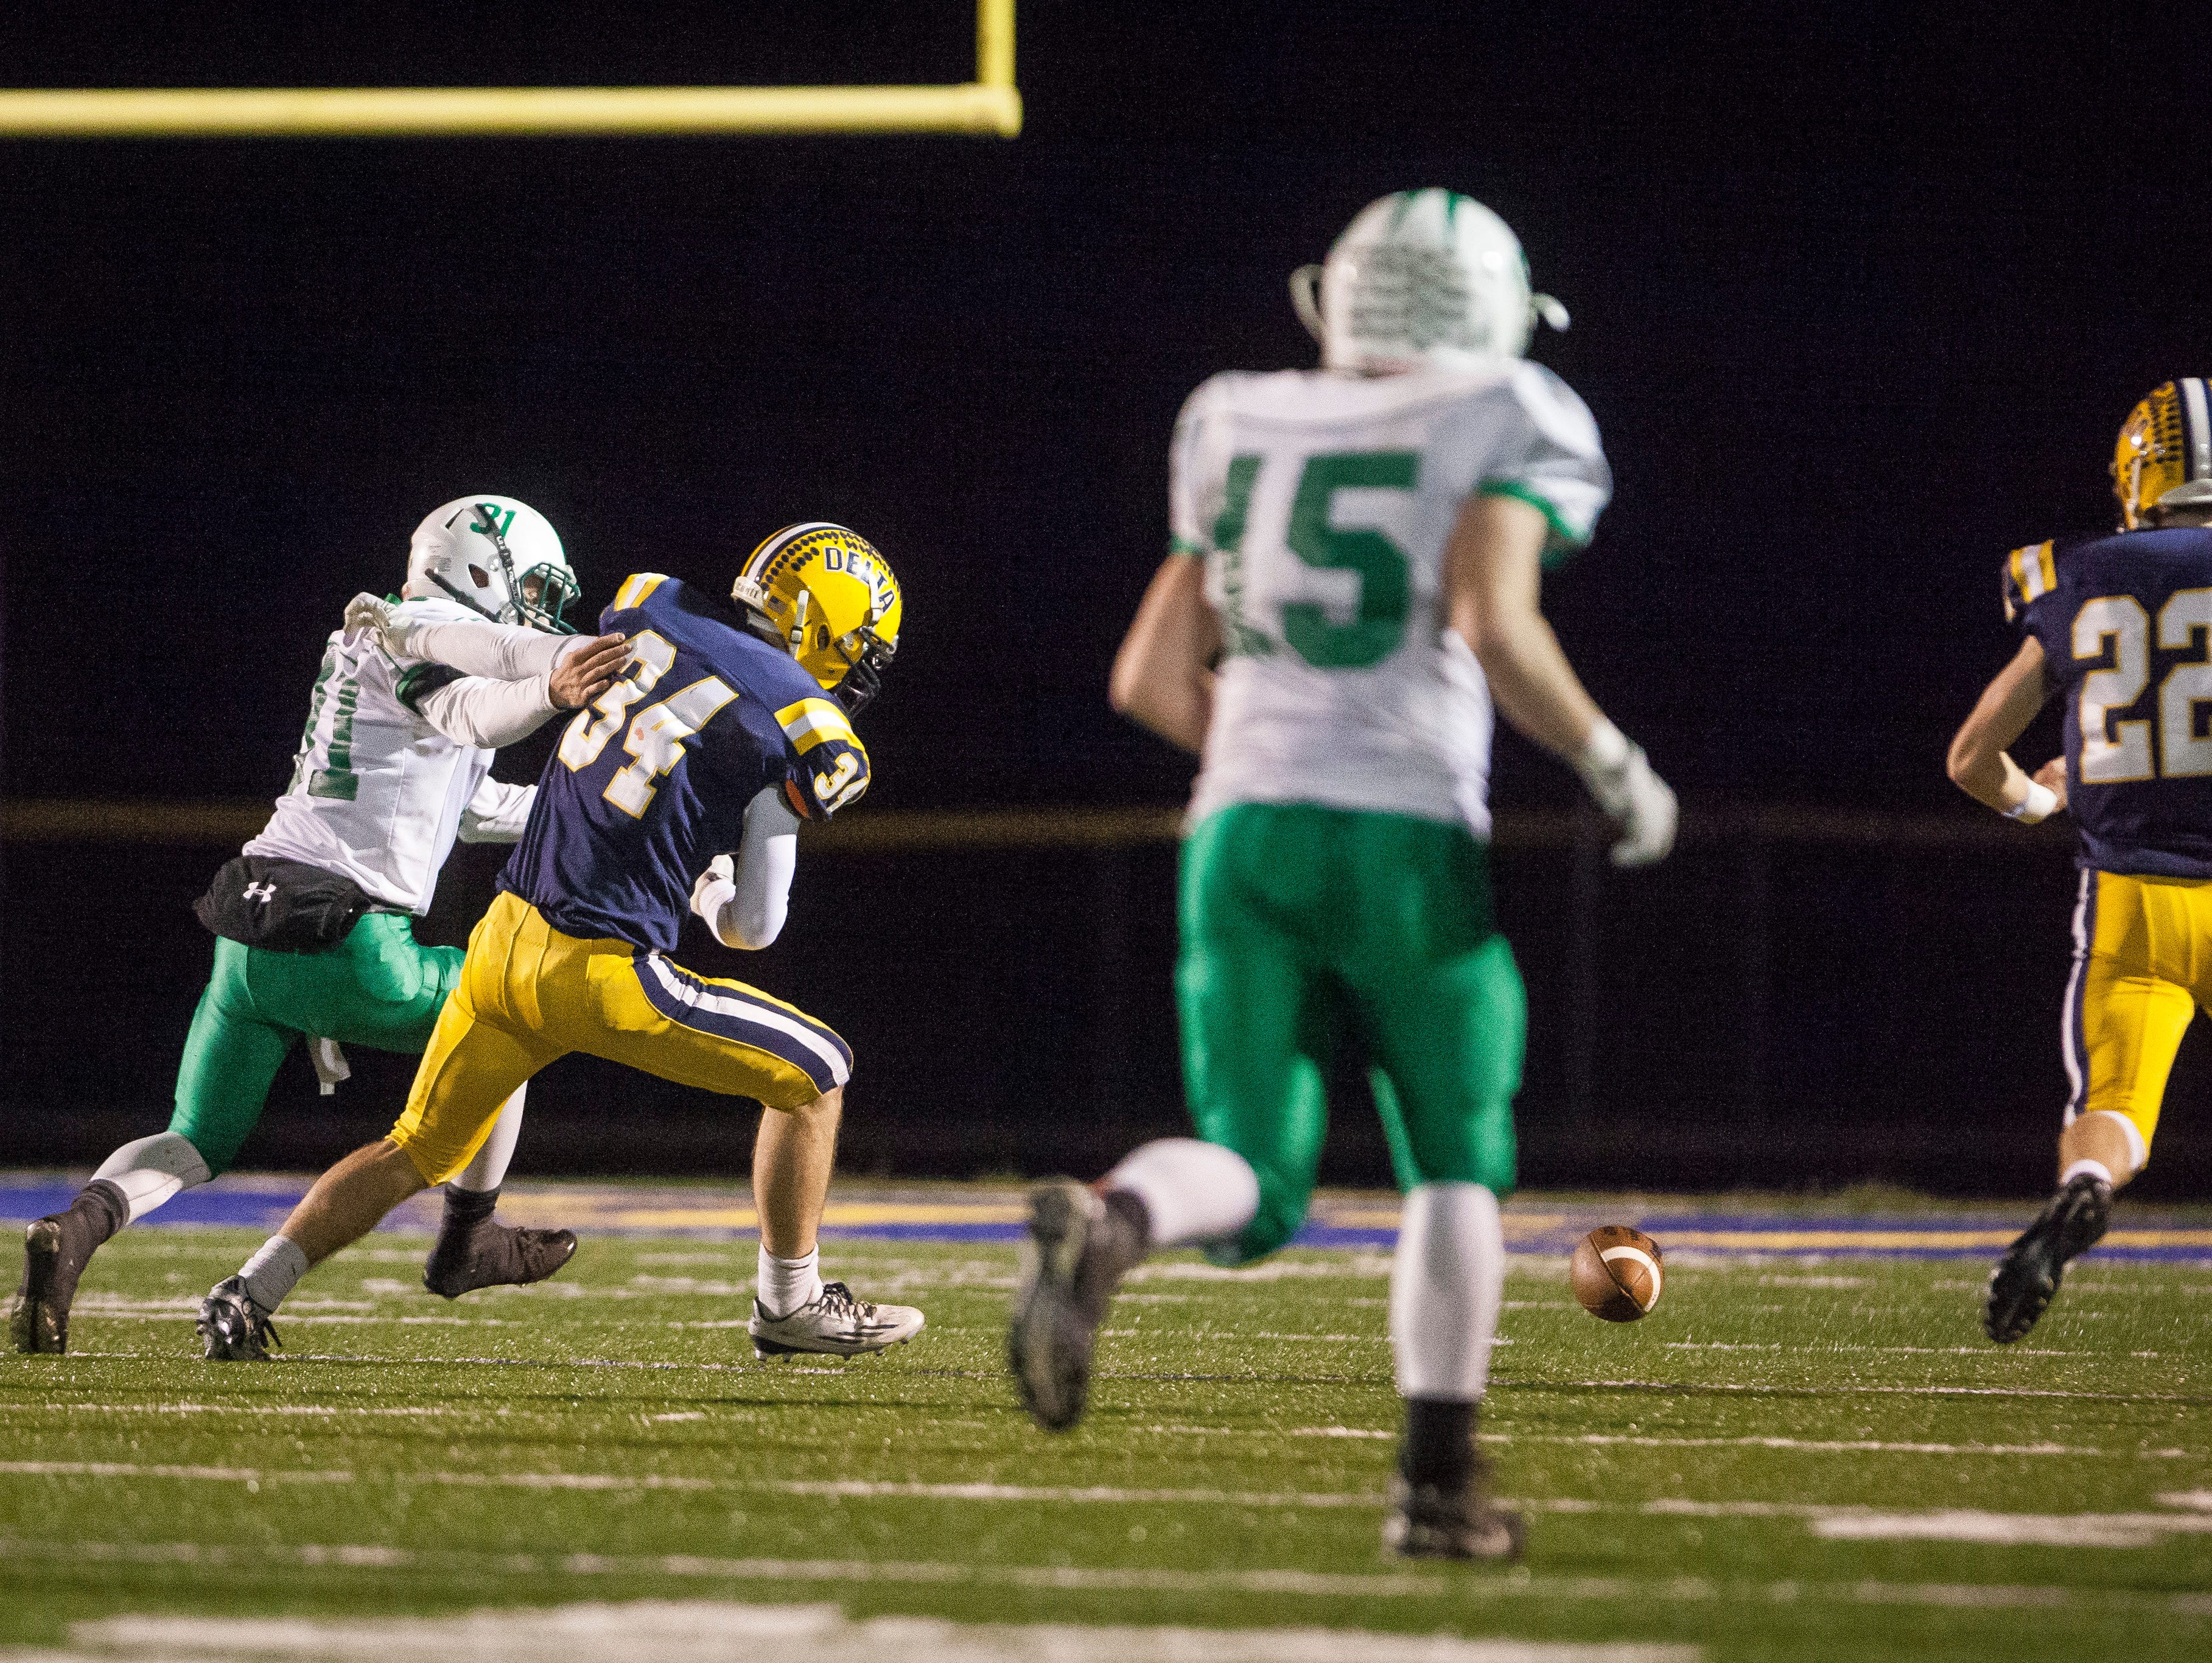 Delta's defense recovers a bad snap from New Castle's offense Friday night. Delta won with a final score of 49-7.